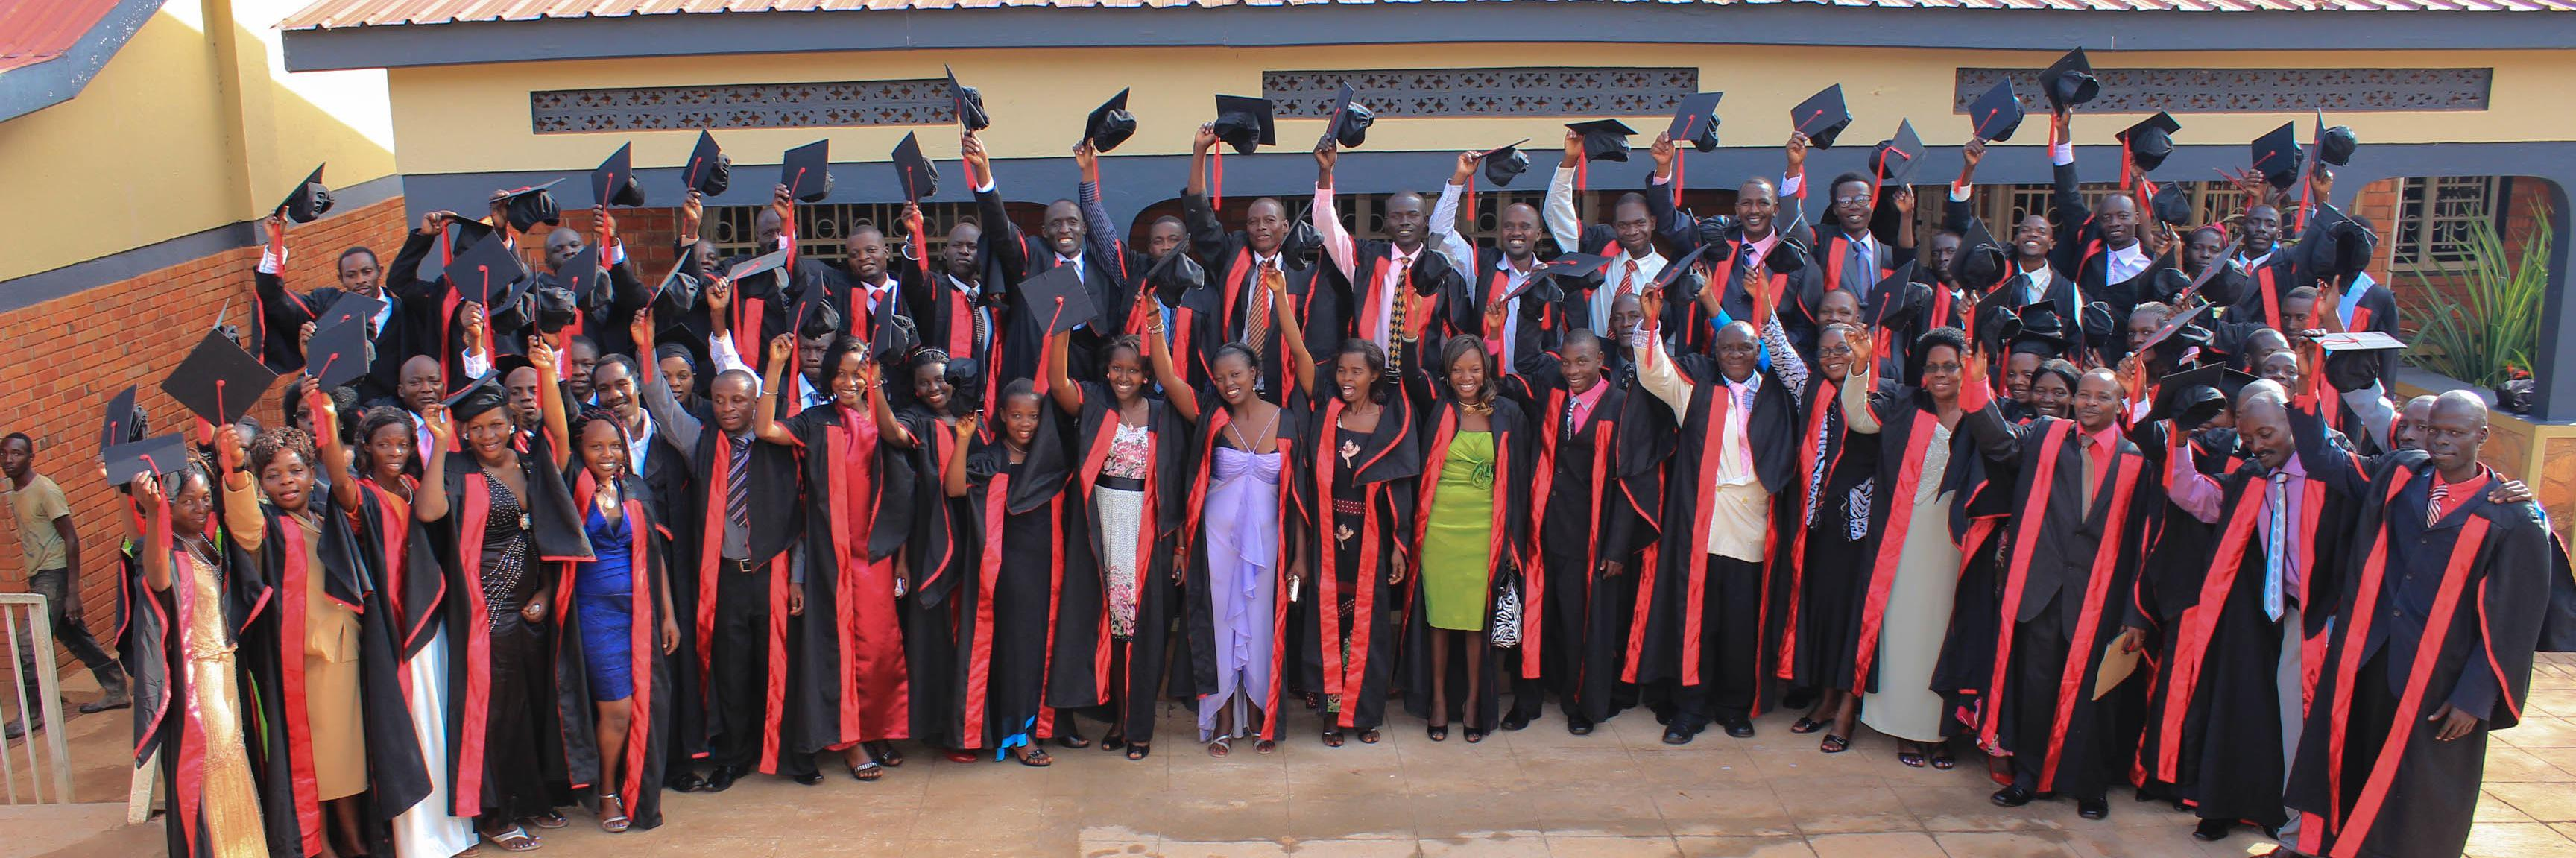 Africa Renewal University's official Twitter account